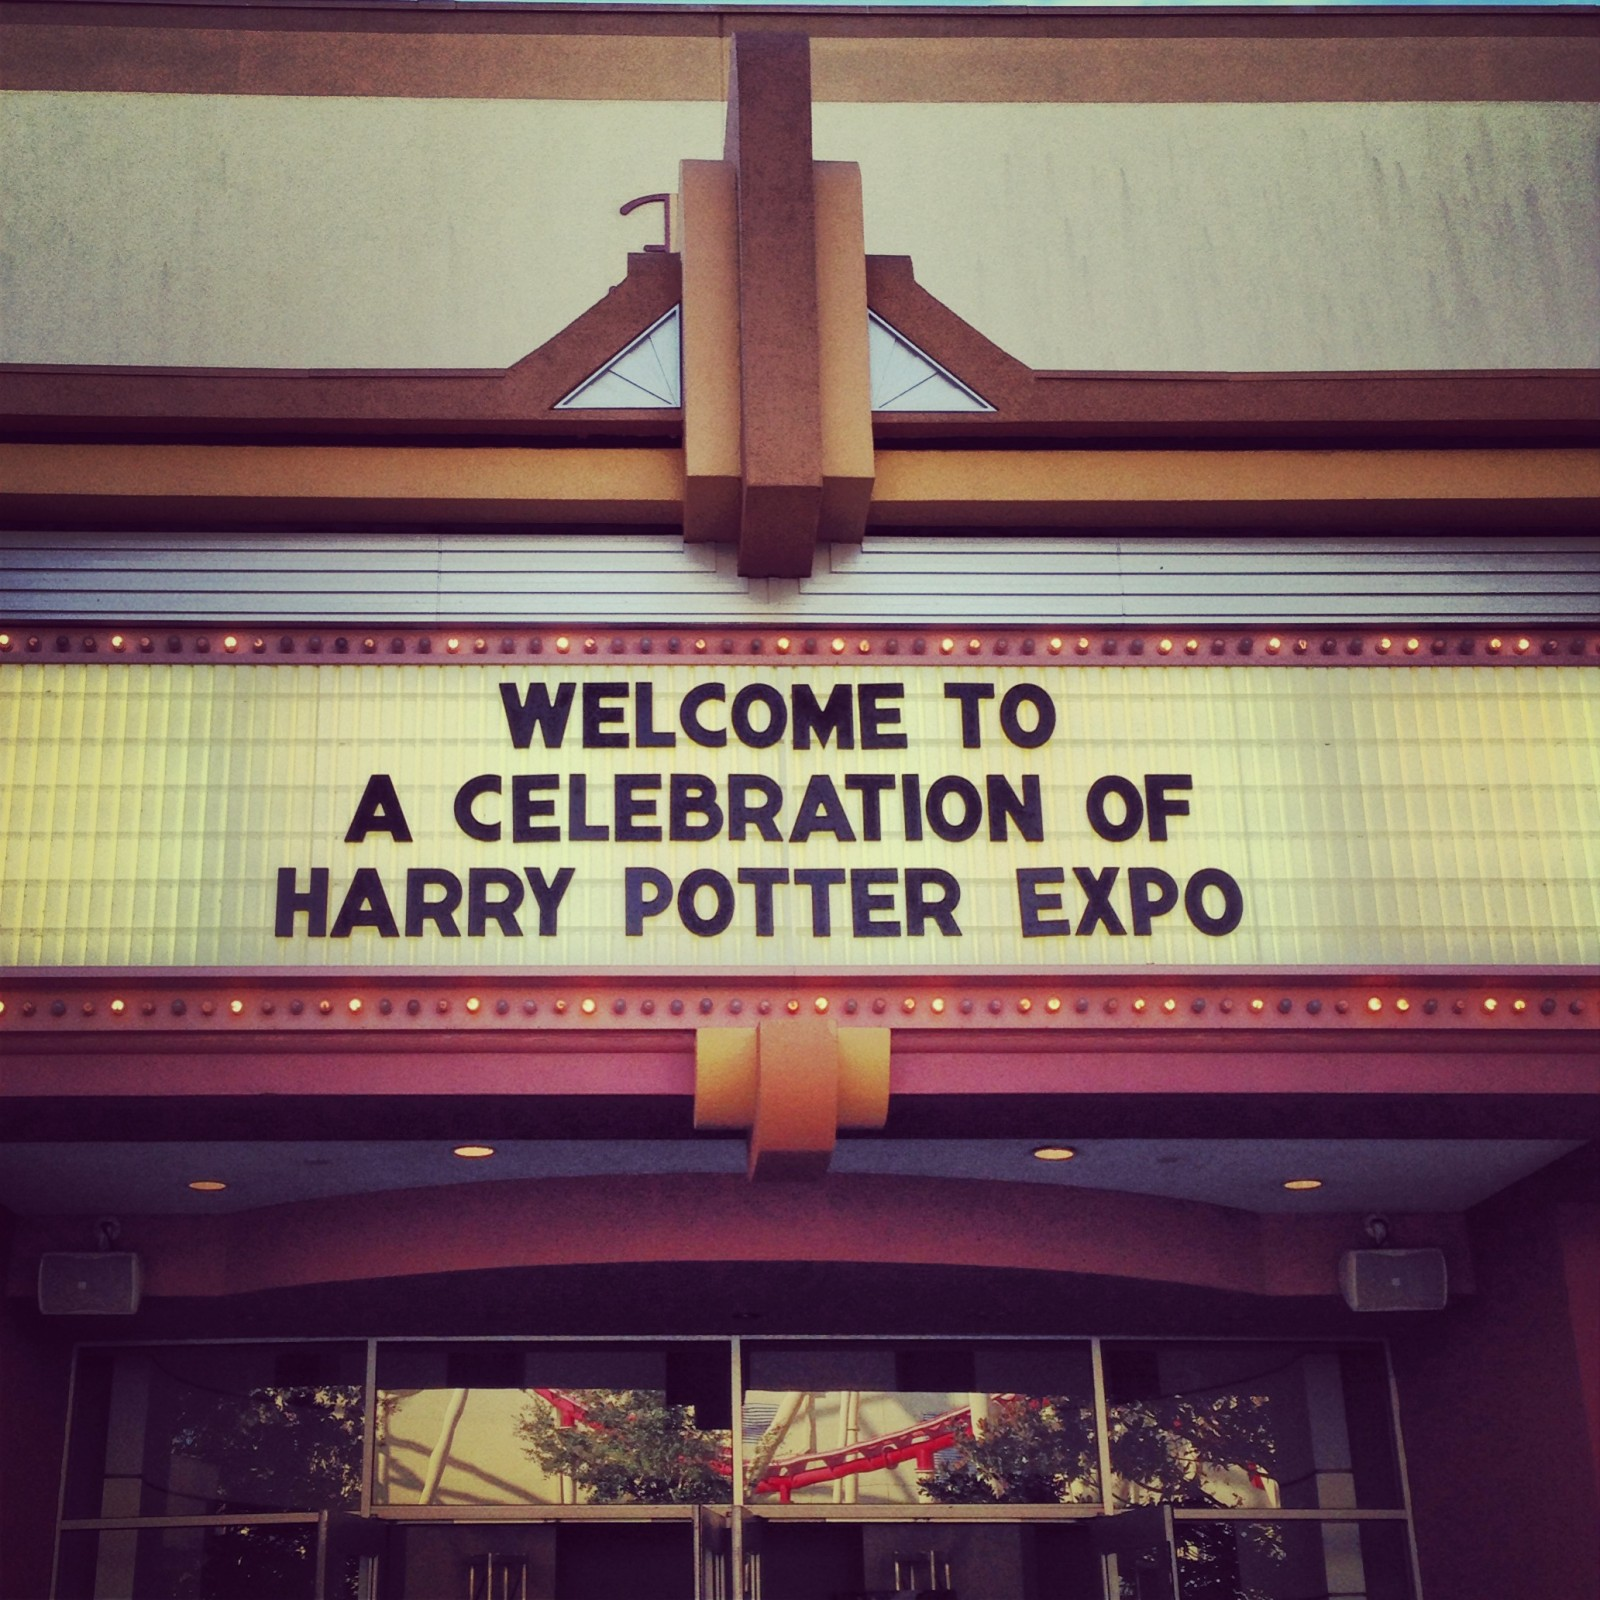 A Celebration of Harry Potter Expo Marquee